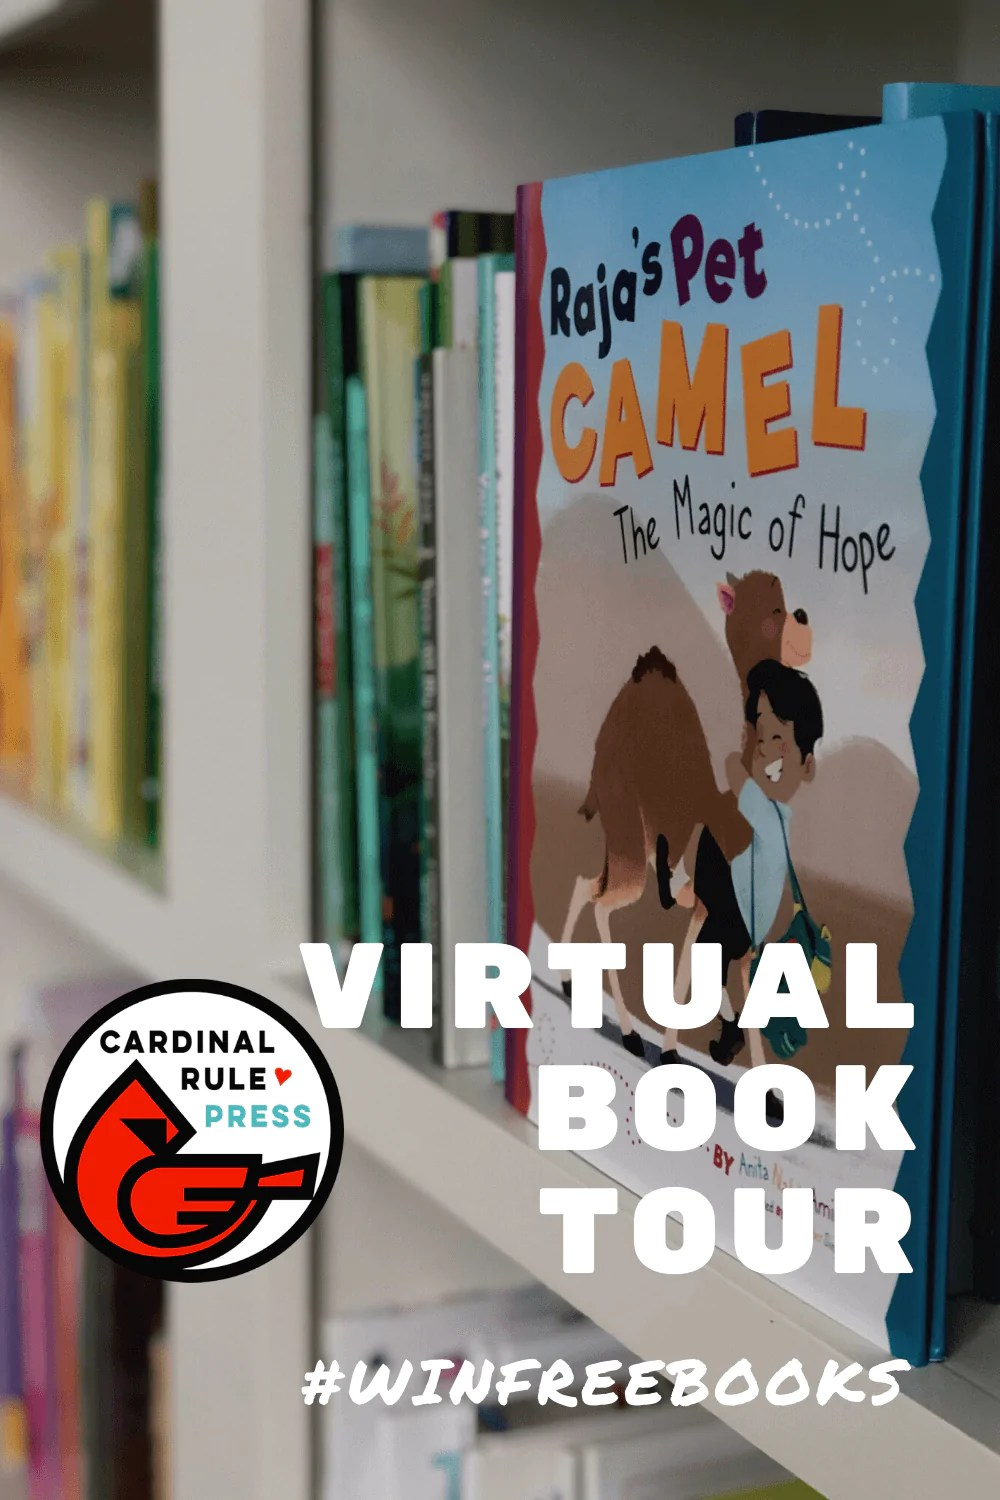 {Win FREE Books} Virtual Book Tour: Raja's Pet Camel